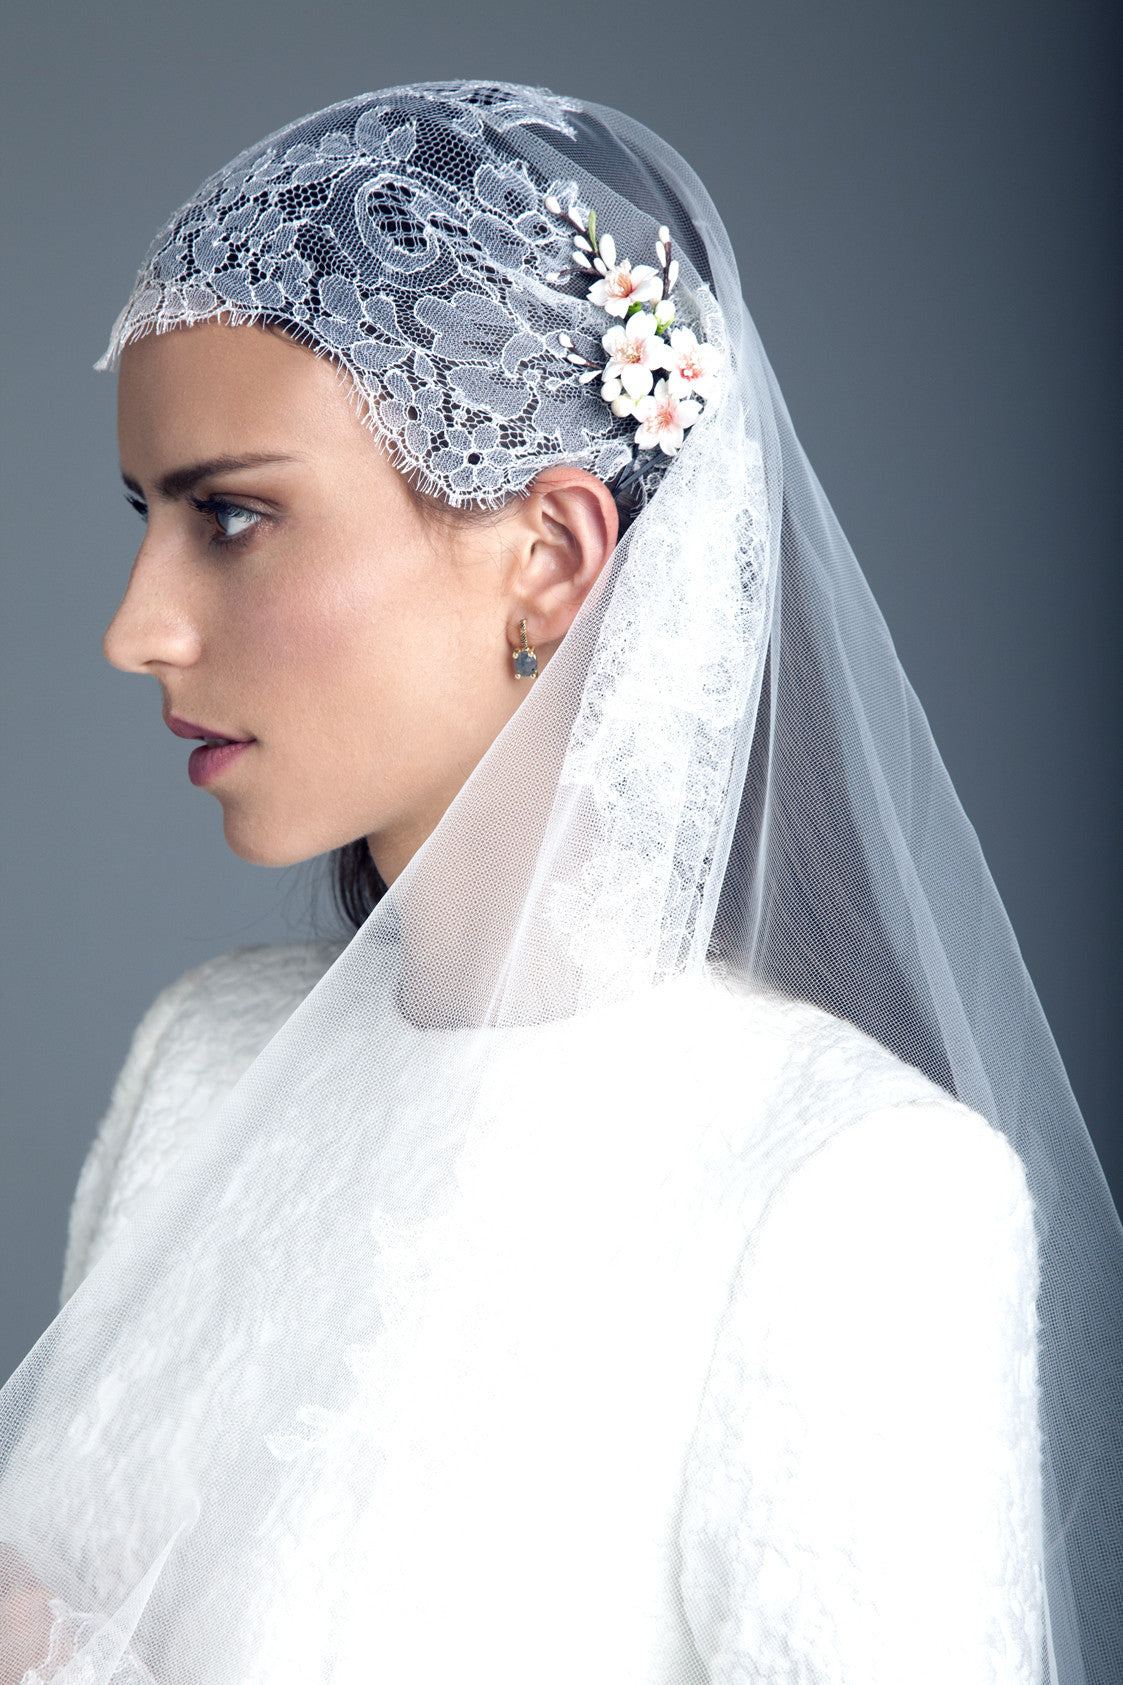 Wedding Veil and Hairpiece